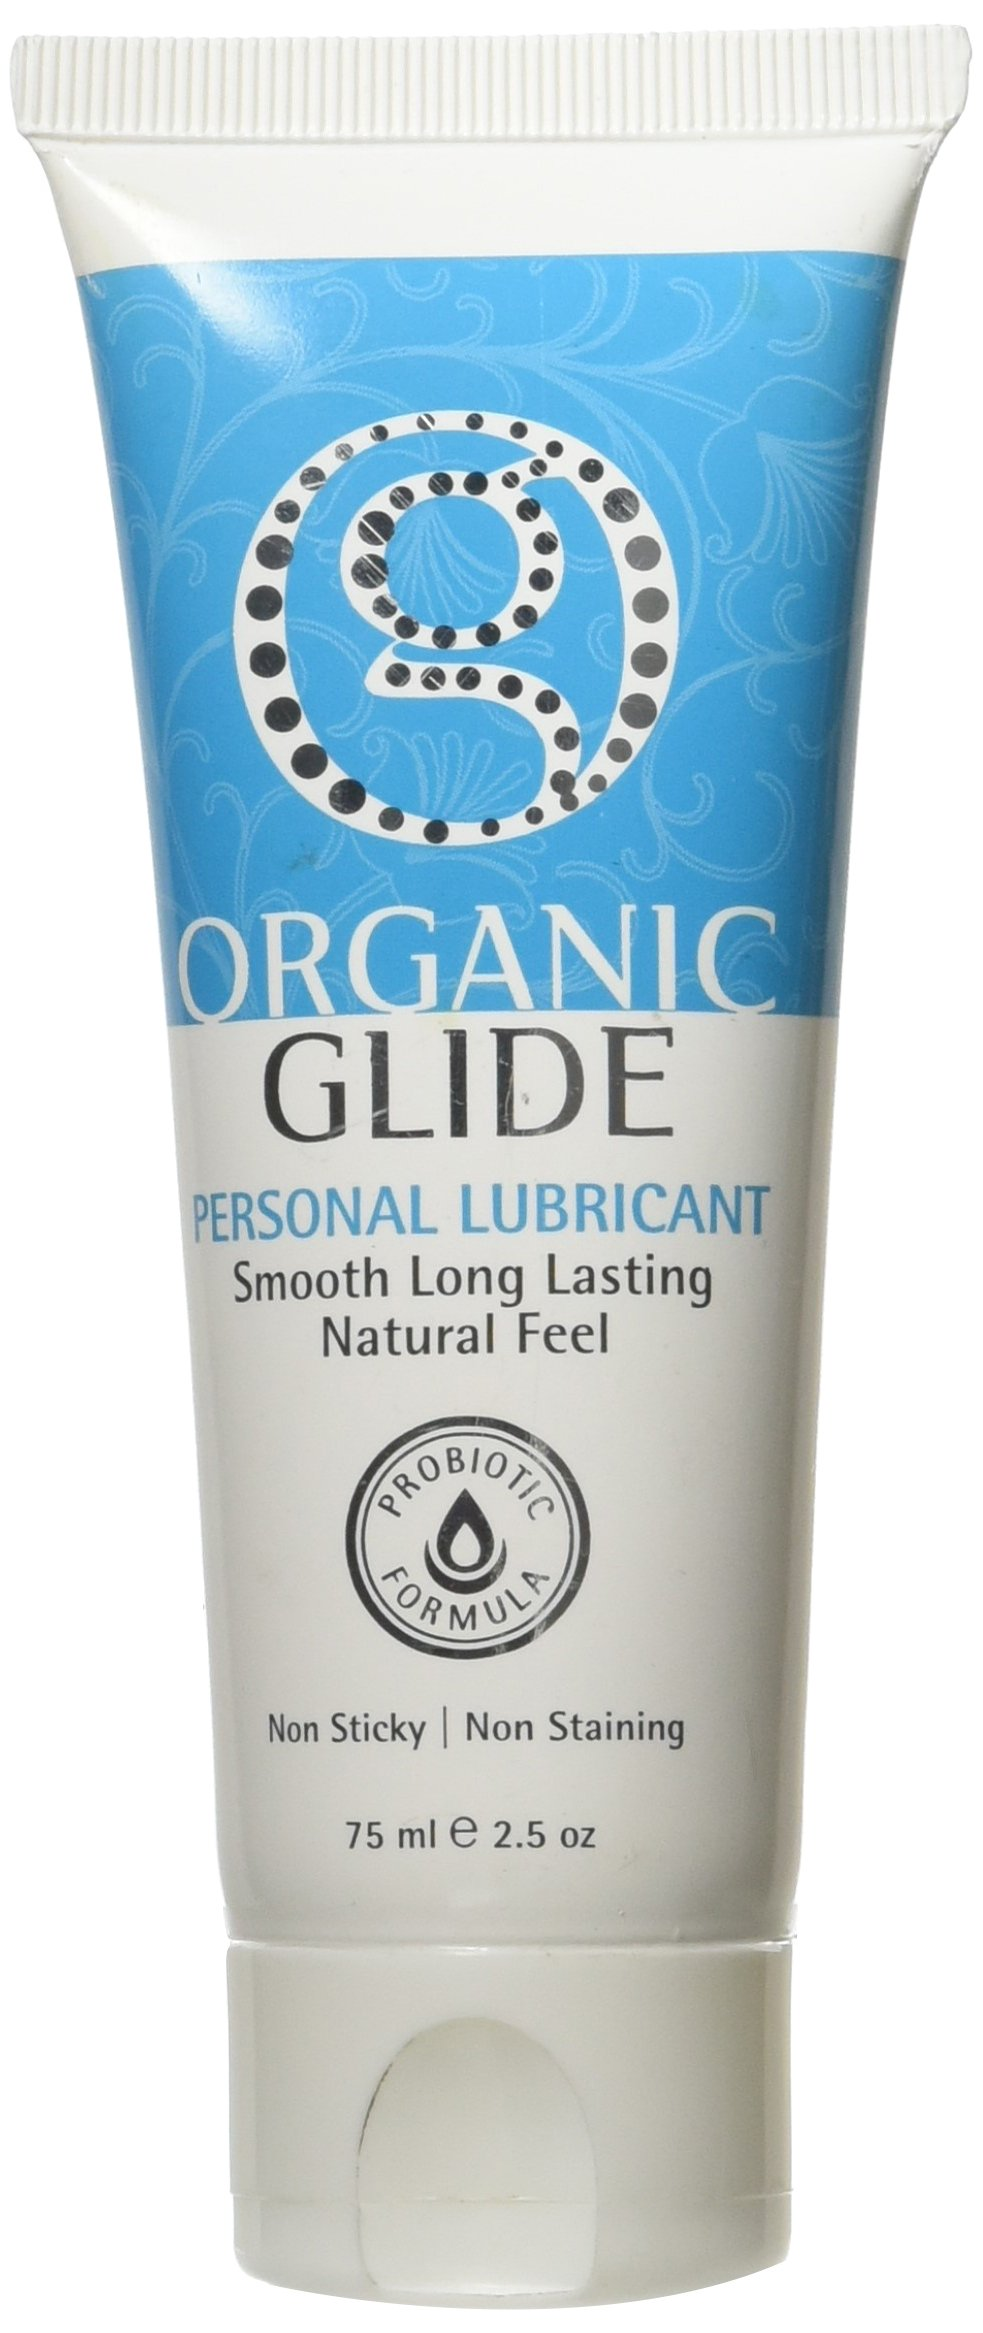 Organic Glide Probiotic All Natural Personal Lubricant 2.5oz Tube Edible Lube, FDA Cleared